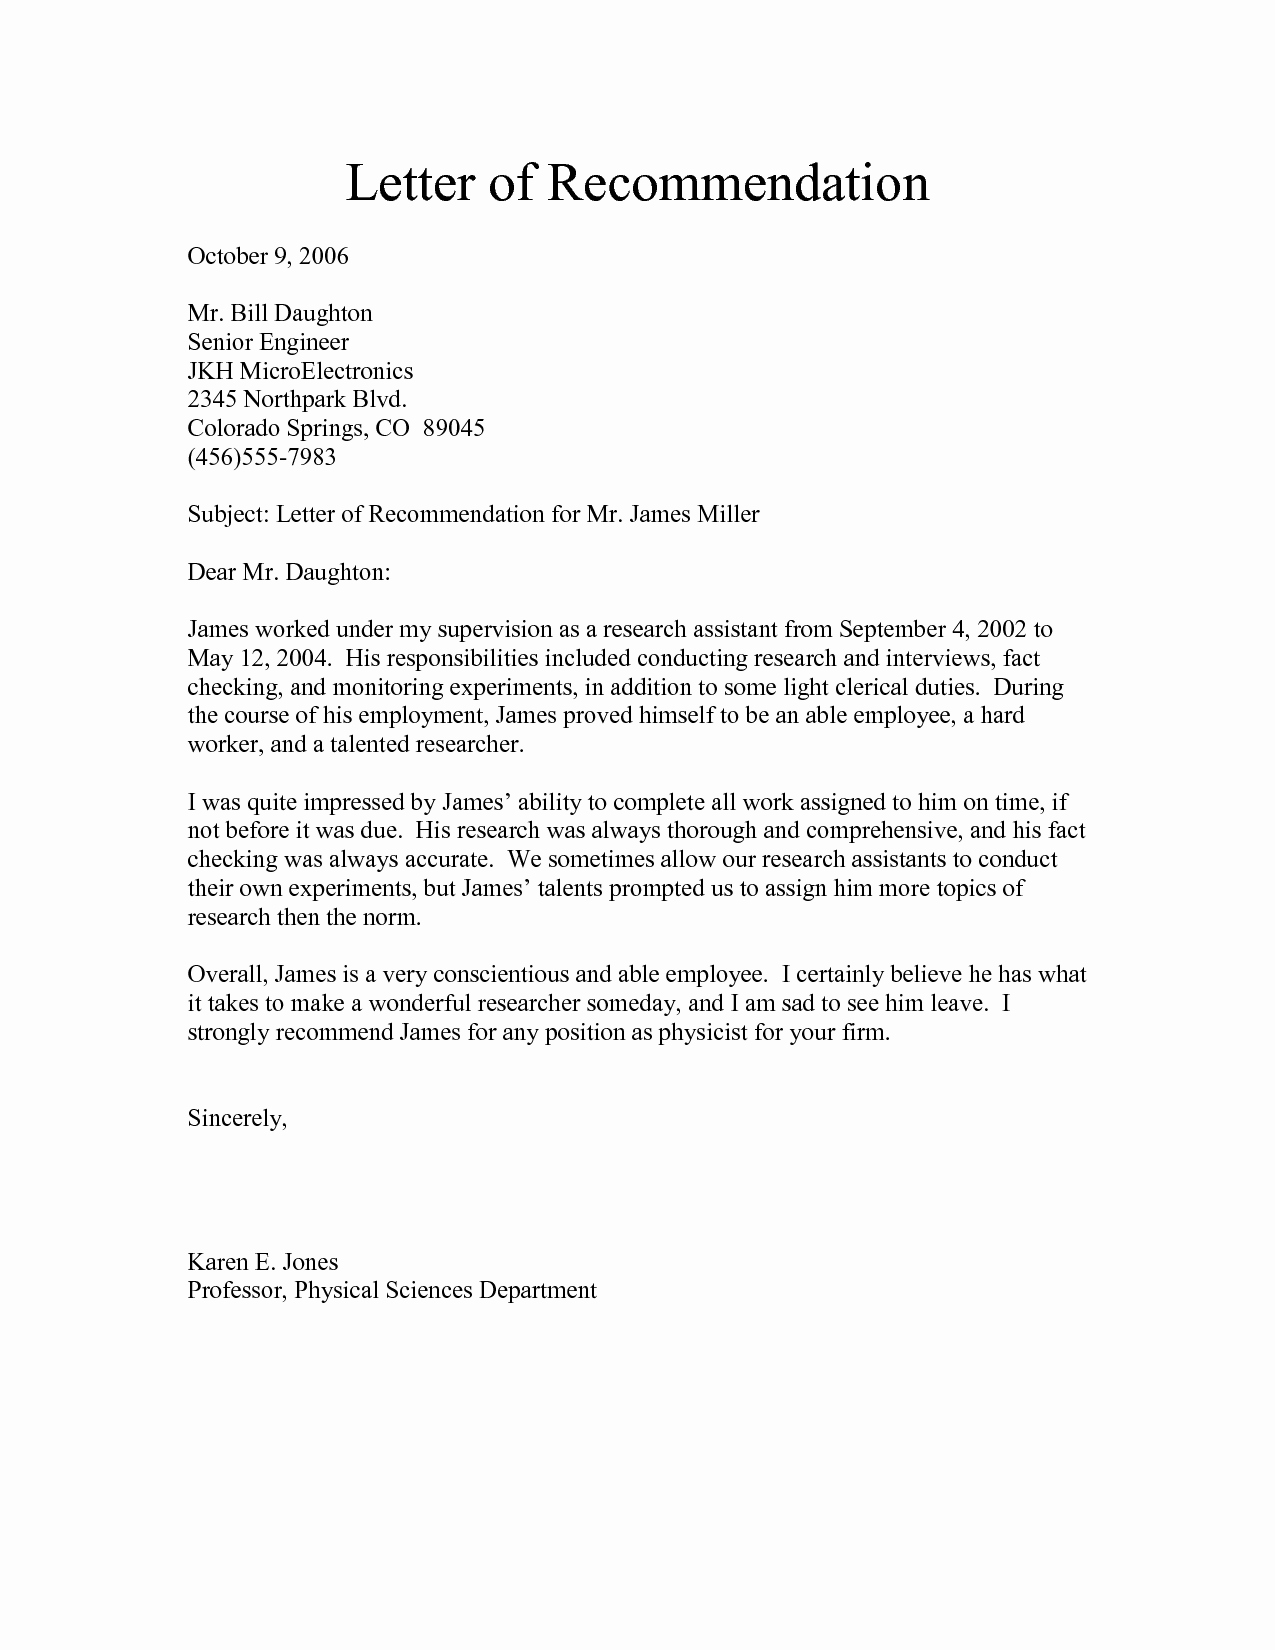 Letter Of Recommendation for Secretary Lovely Army Letter Re Mendation Exampleletter